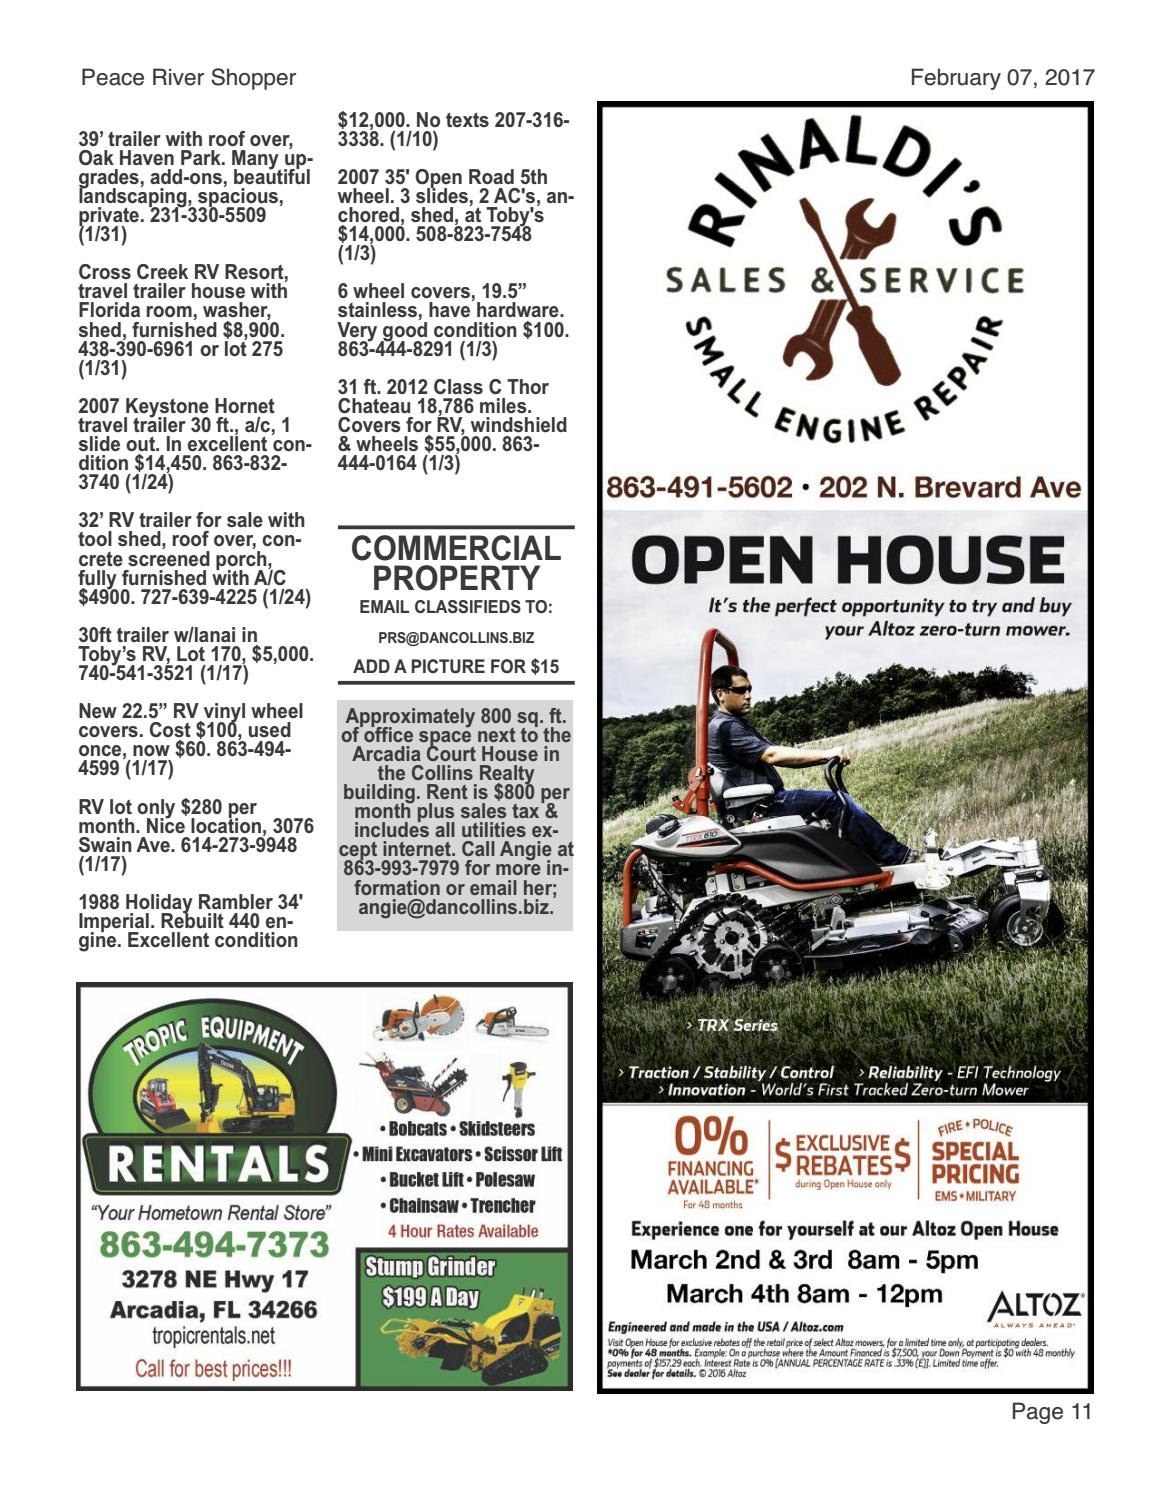 February 07, 2017 Peace River Shopper by Peace River Shopper